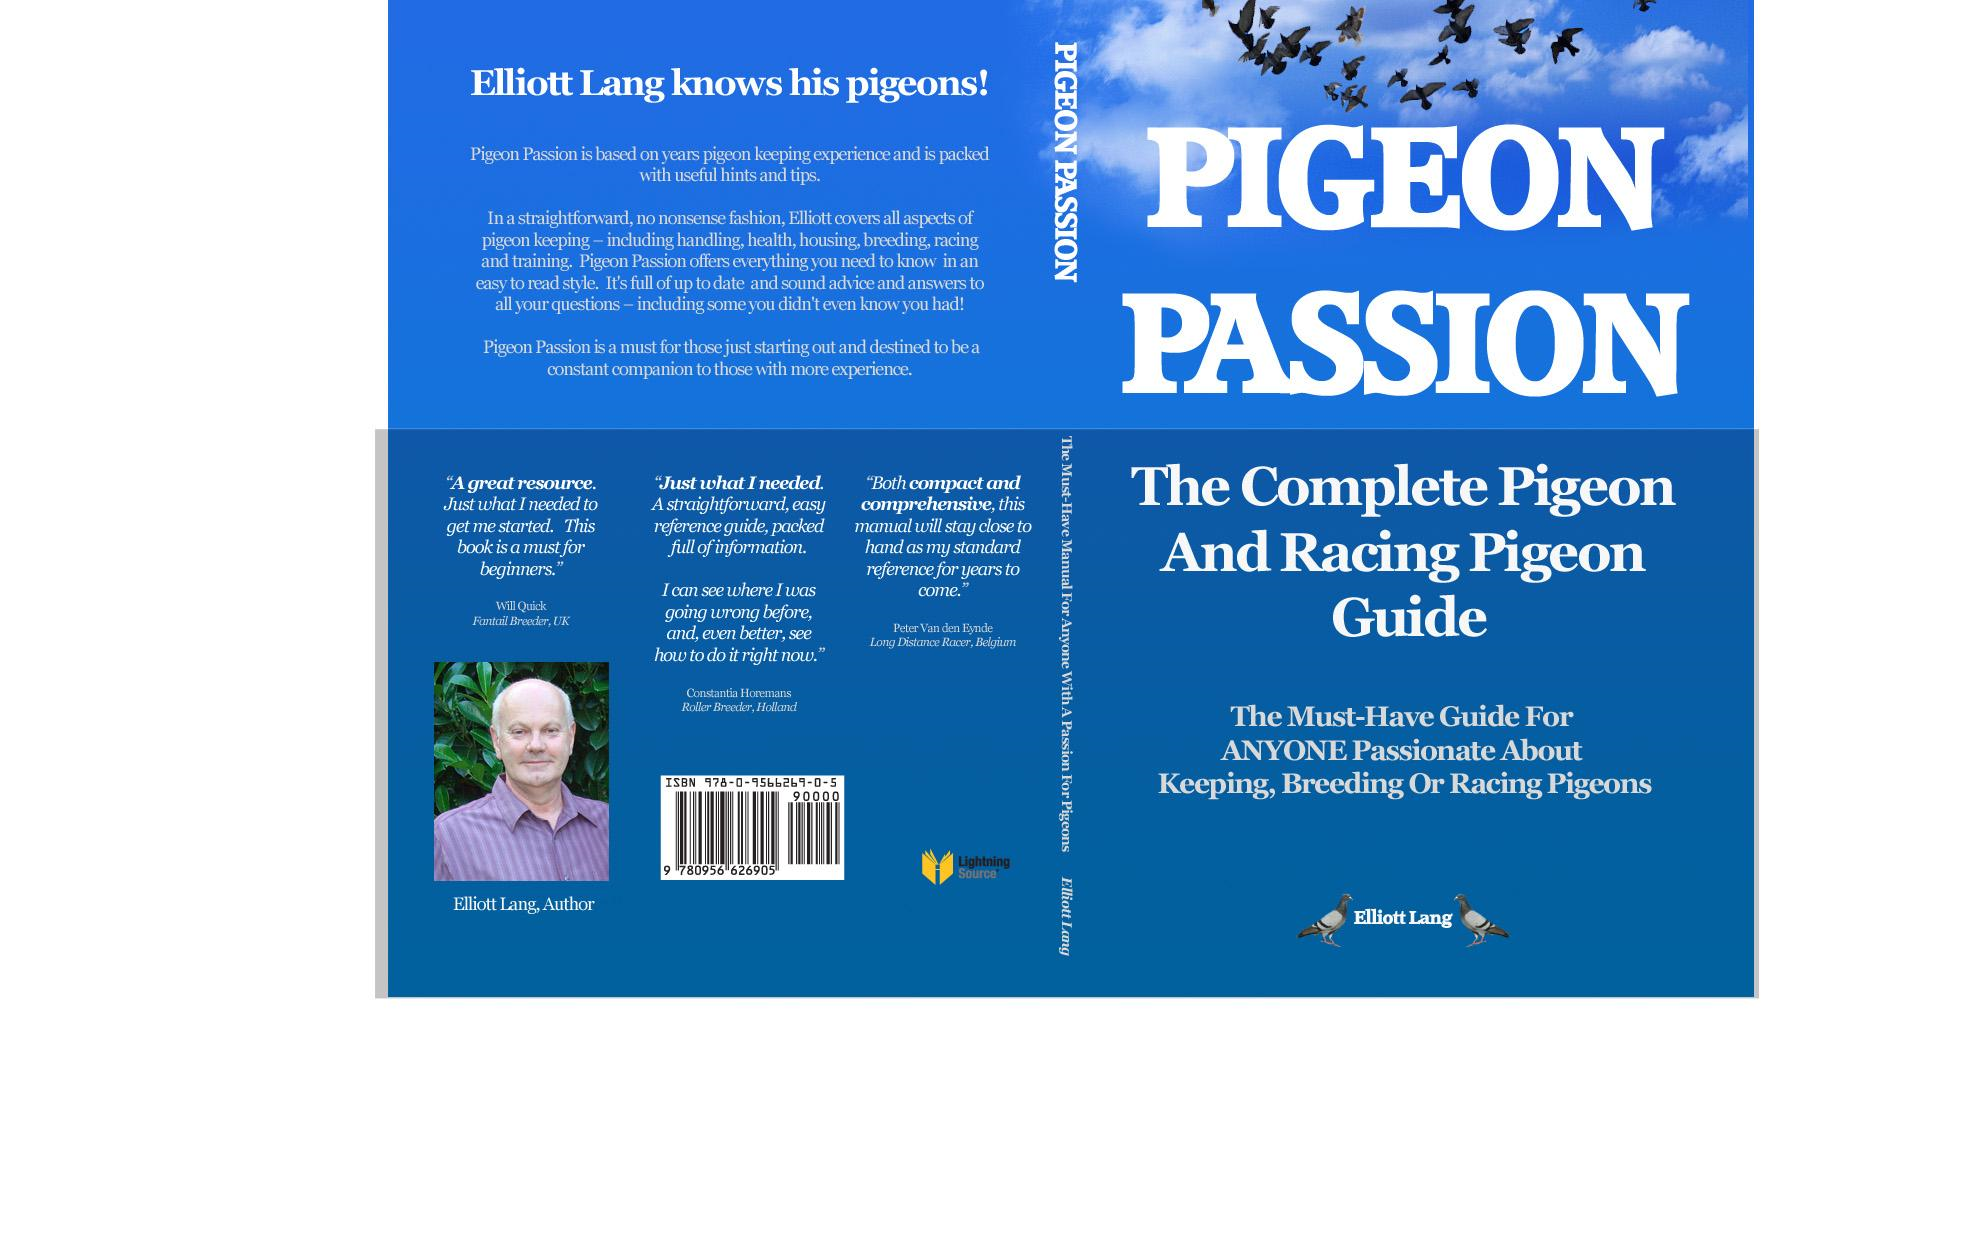 Pigeon Passion.The Complete Pigeon and Racing Pigeon Guide.